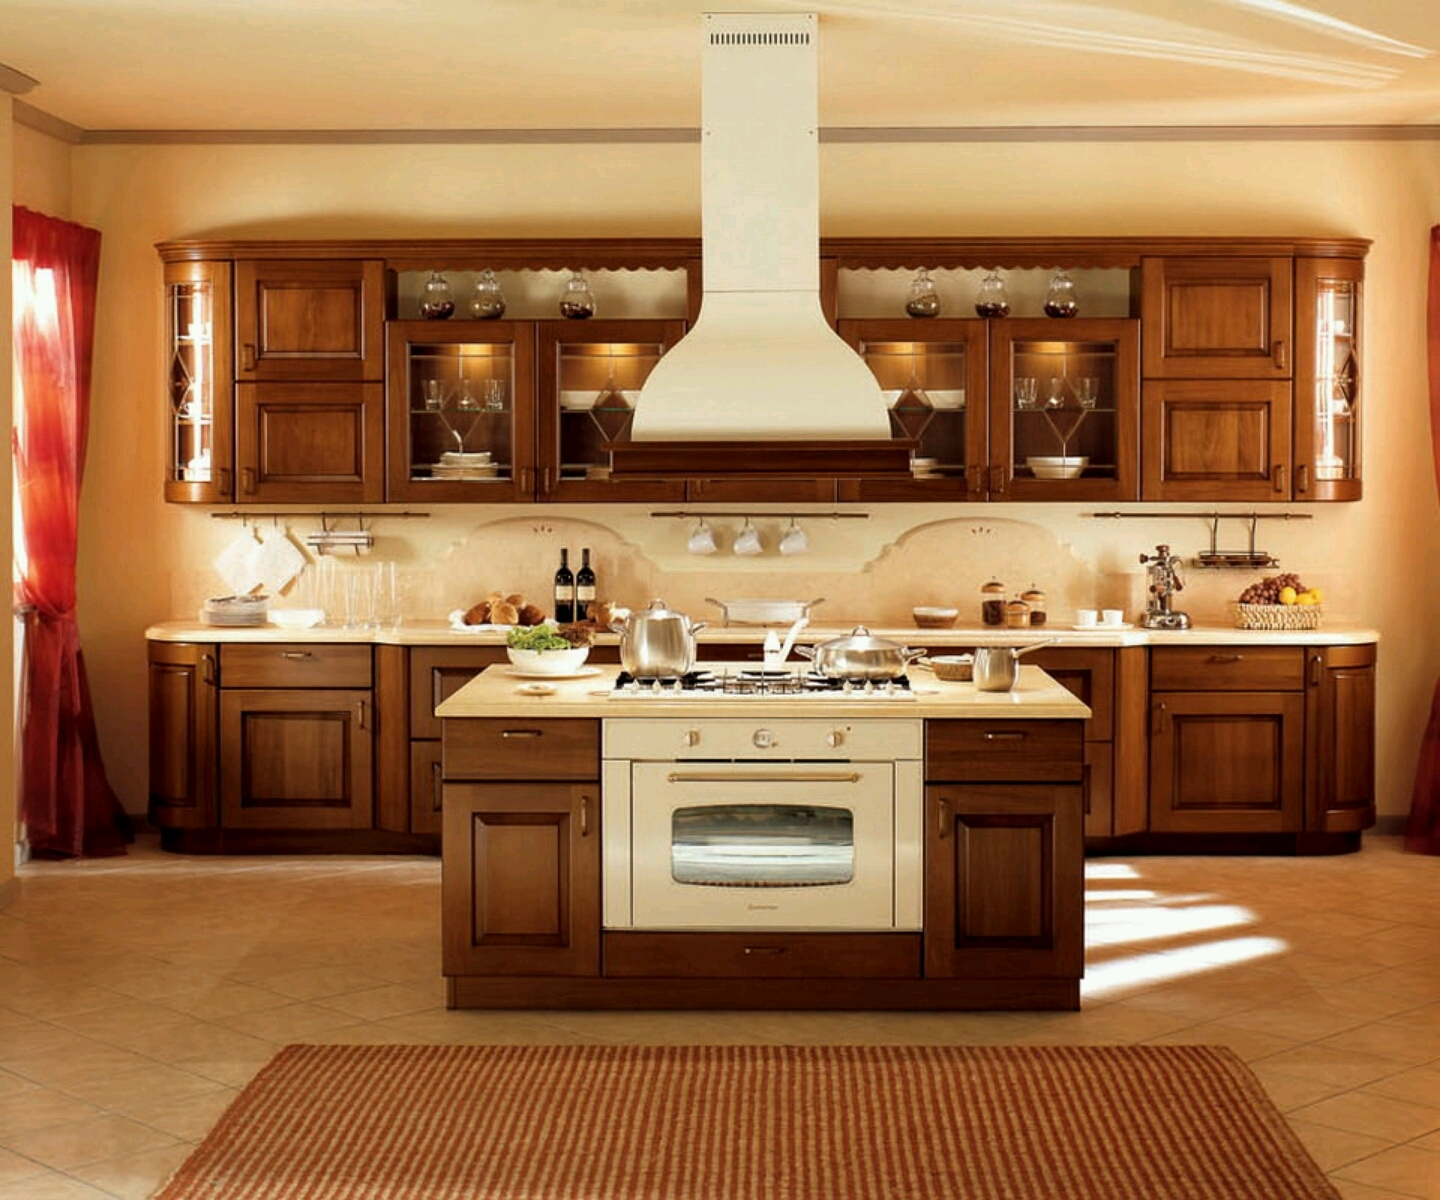 Consumers Kitchen Cabinets: Consumer Reports Top Kitchen Cabinets